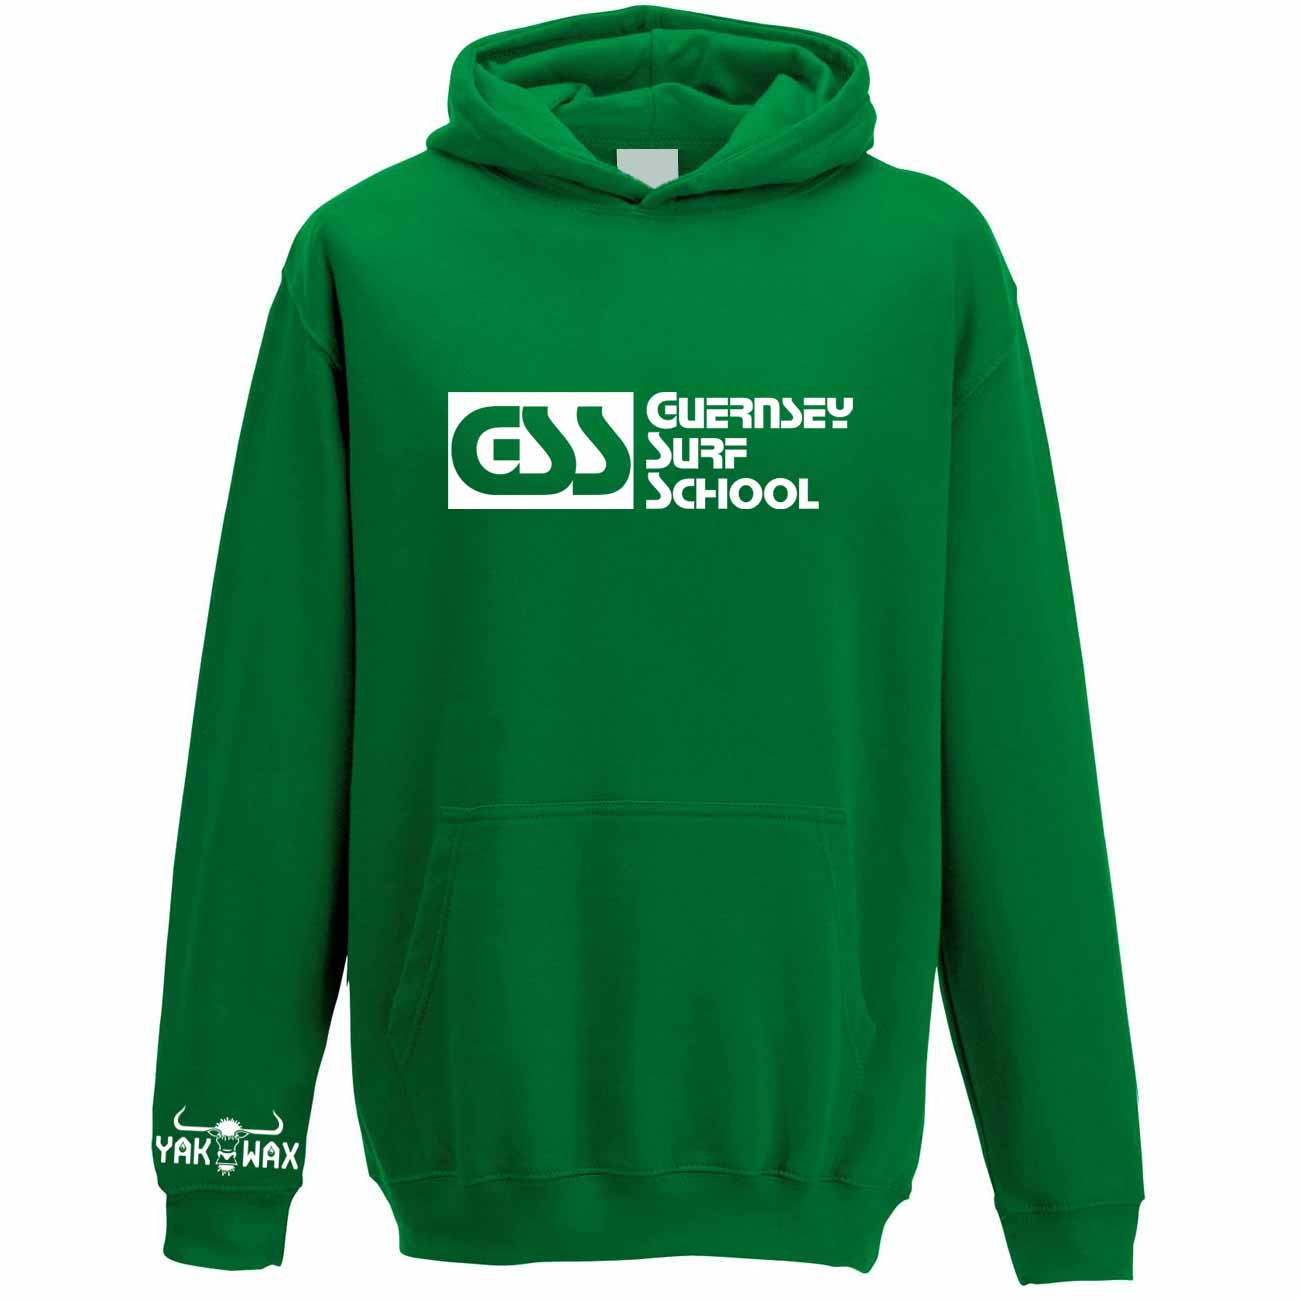 Kids Hoodie GSS OG - 20 Colours Available